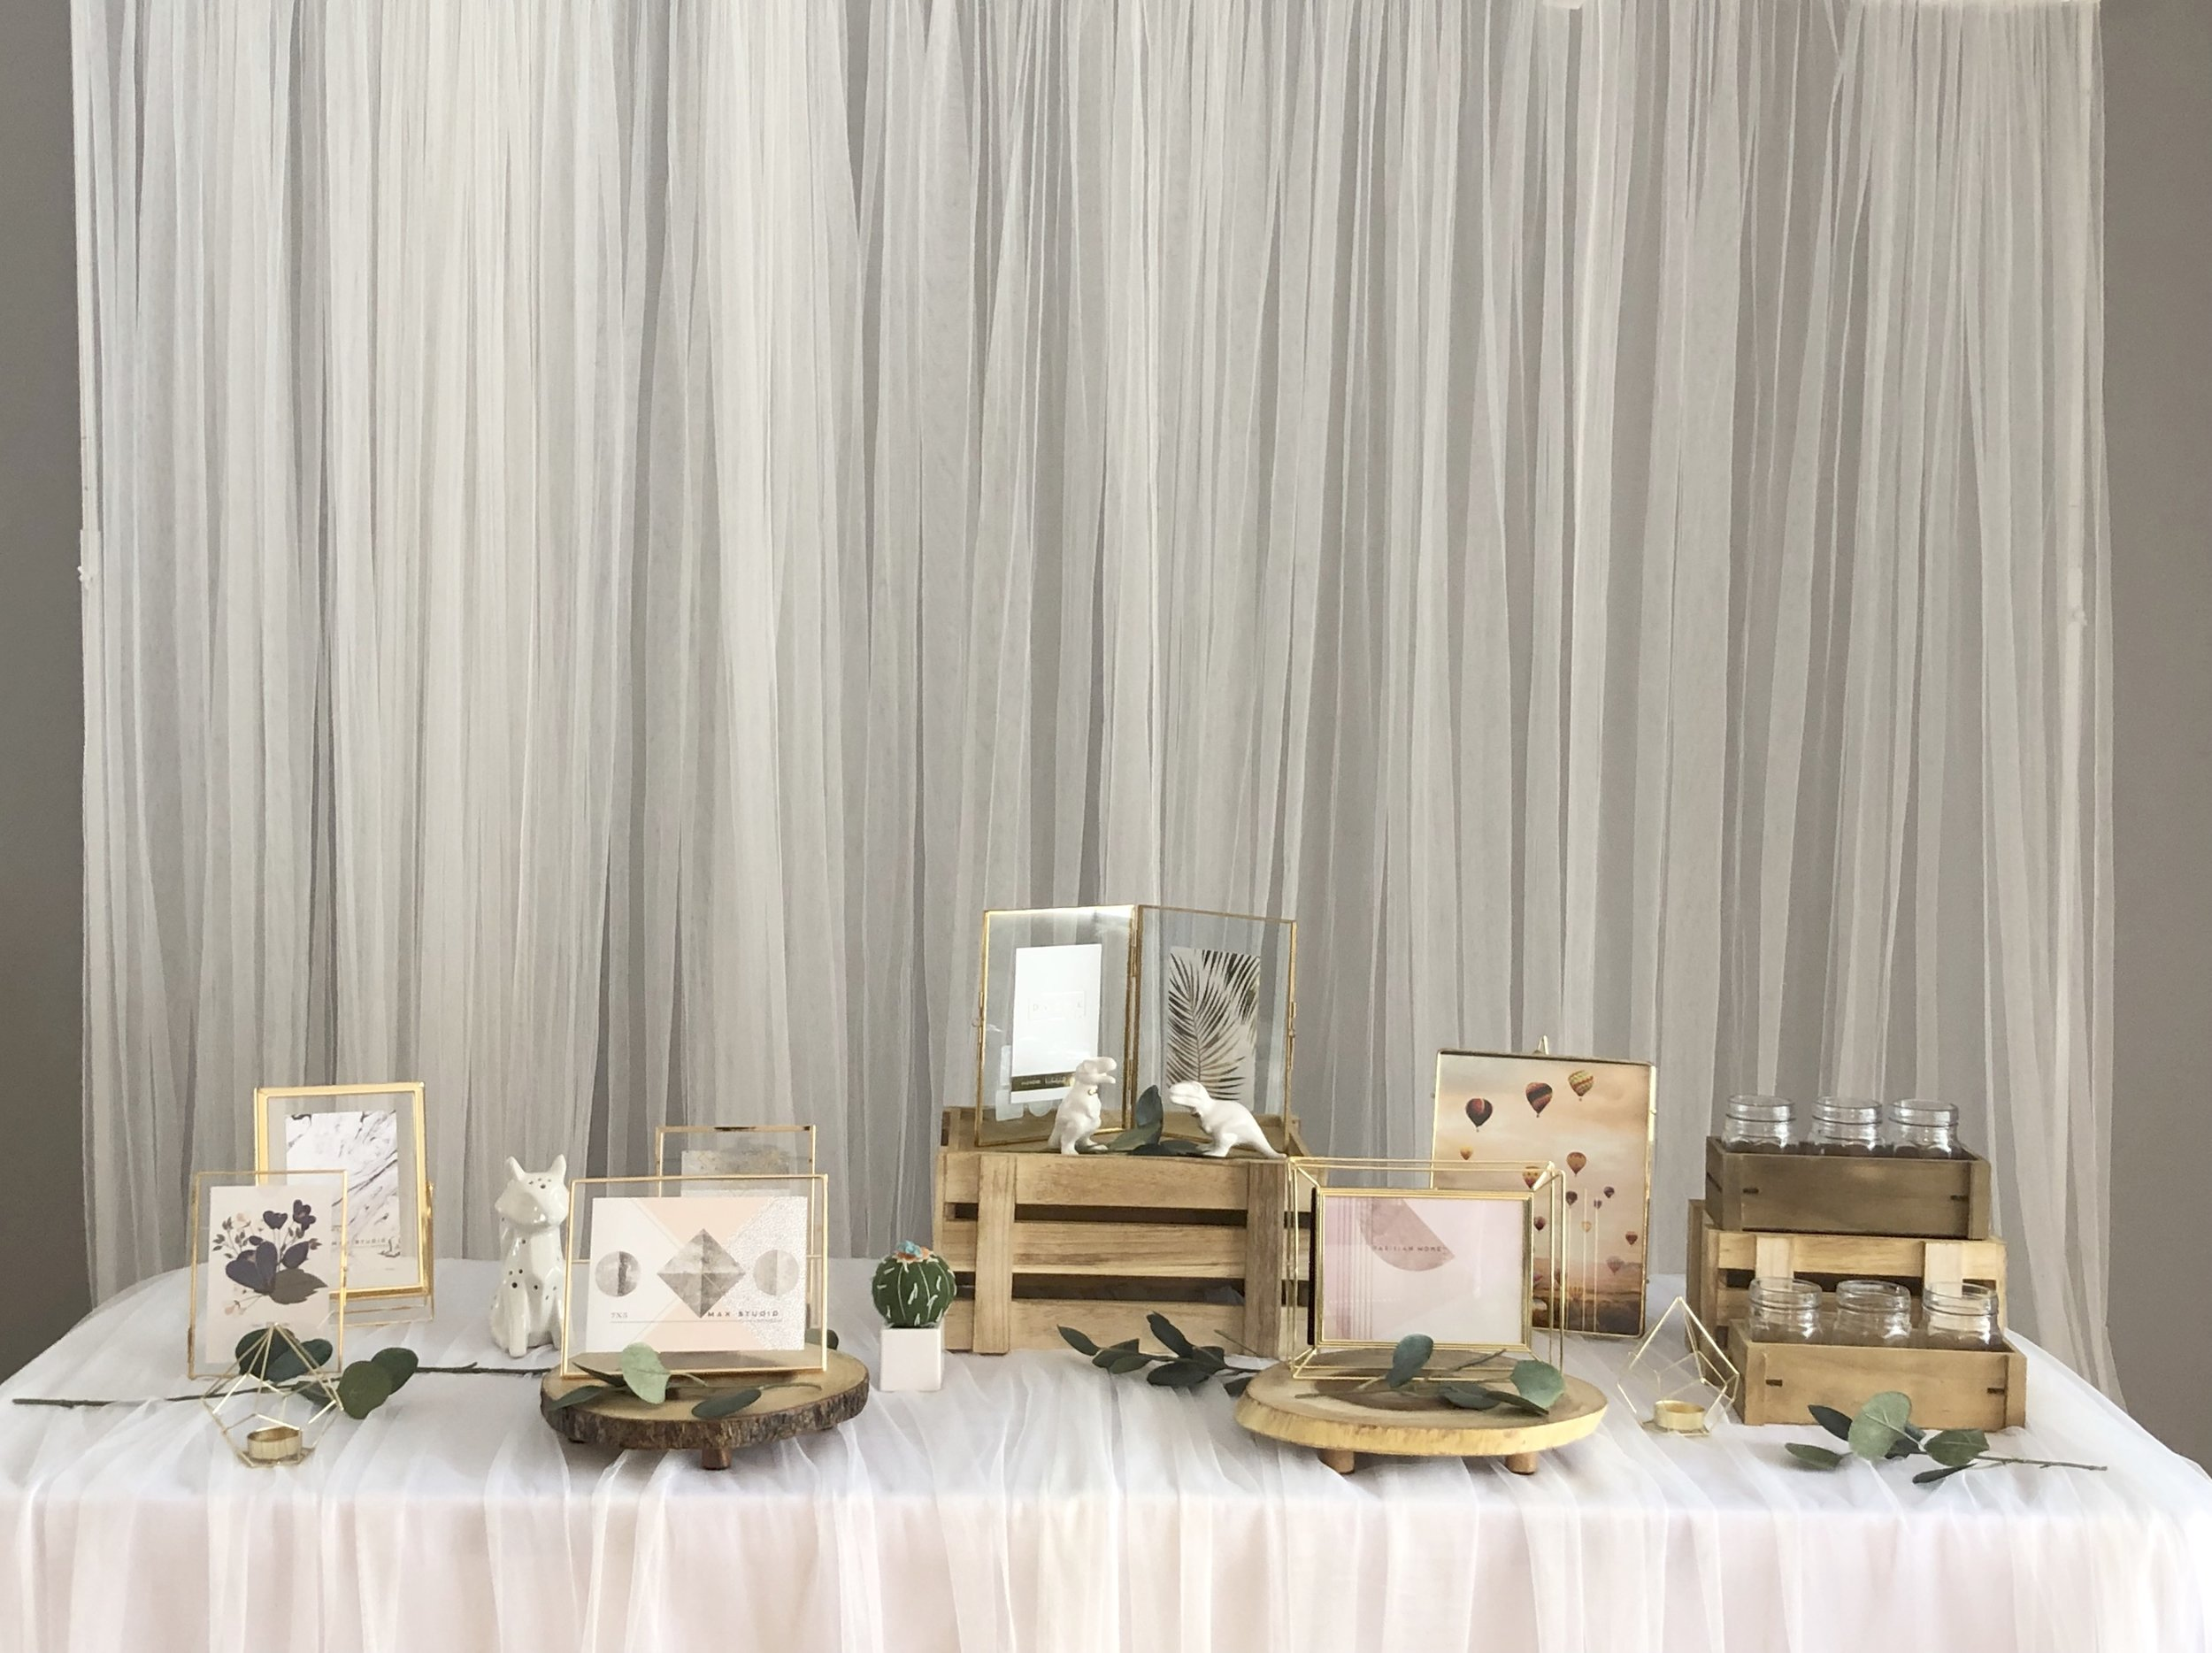 Gold vintage photo table - Included: 7 picture frames,2 mini gold candle holders, wood crates, wood trays, fox, dinosaurs or flowers.상품 구성: 골드 액자 7개, 나무 상자, 나무 스탠드 2개, 골드 초홀더, 모형 공룡 or 꽃 , 여우, 선인장